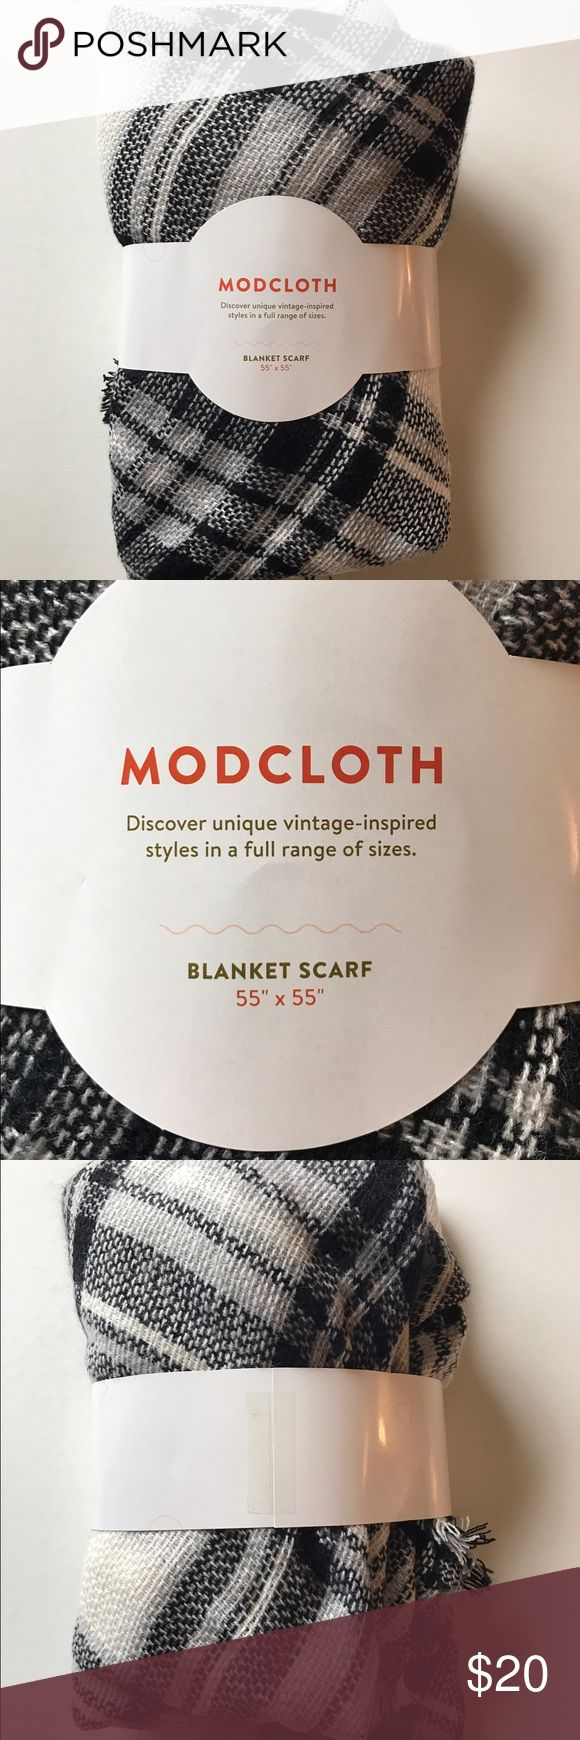 Modcloth Blanket Scarf NEW! Modcloth Blanket Scarf.  Black and white. ModCloth Accessories Scarves & Wraps